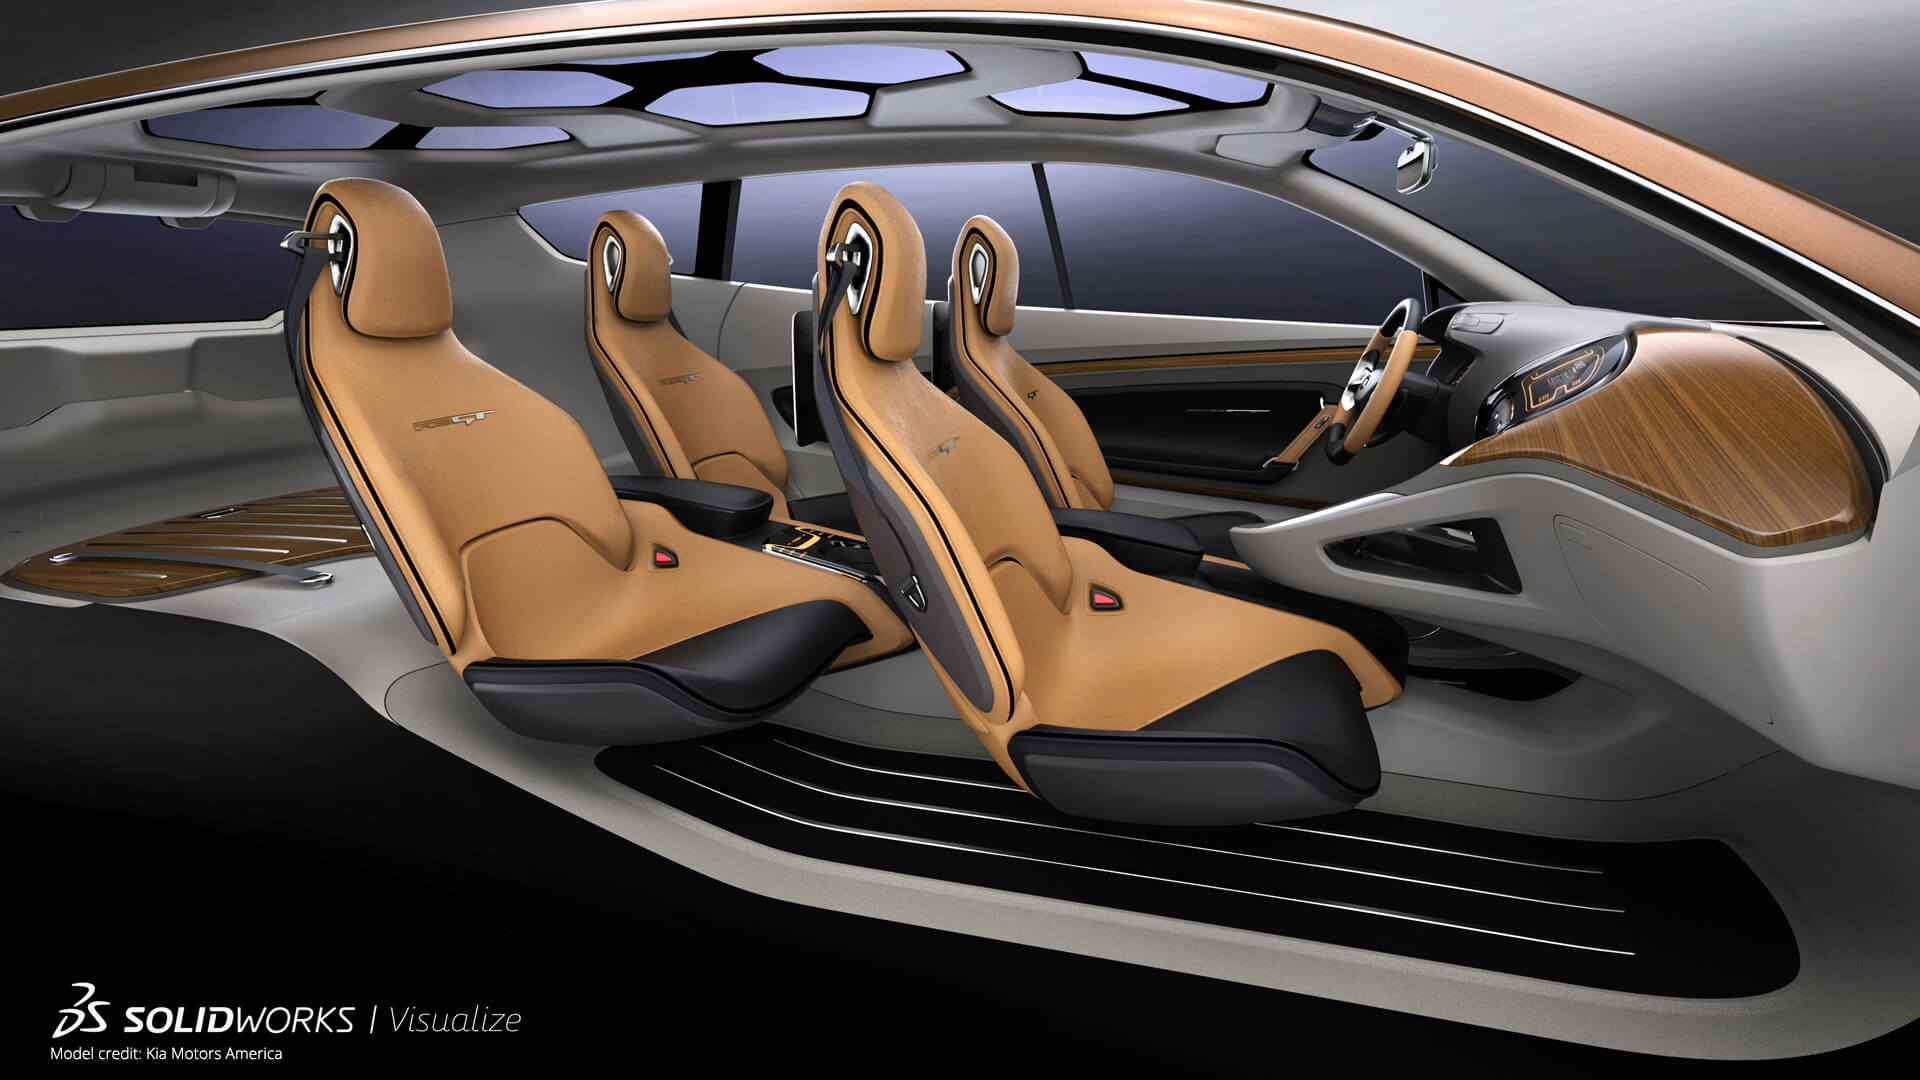 SOLIDWORKS Visualize Connected Example Car Interior